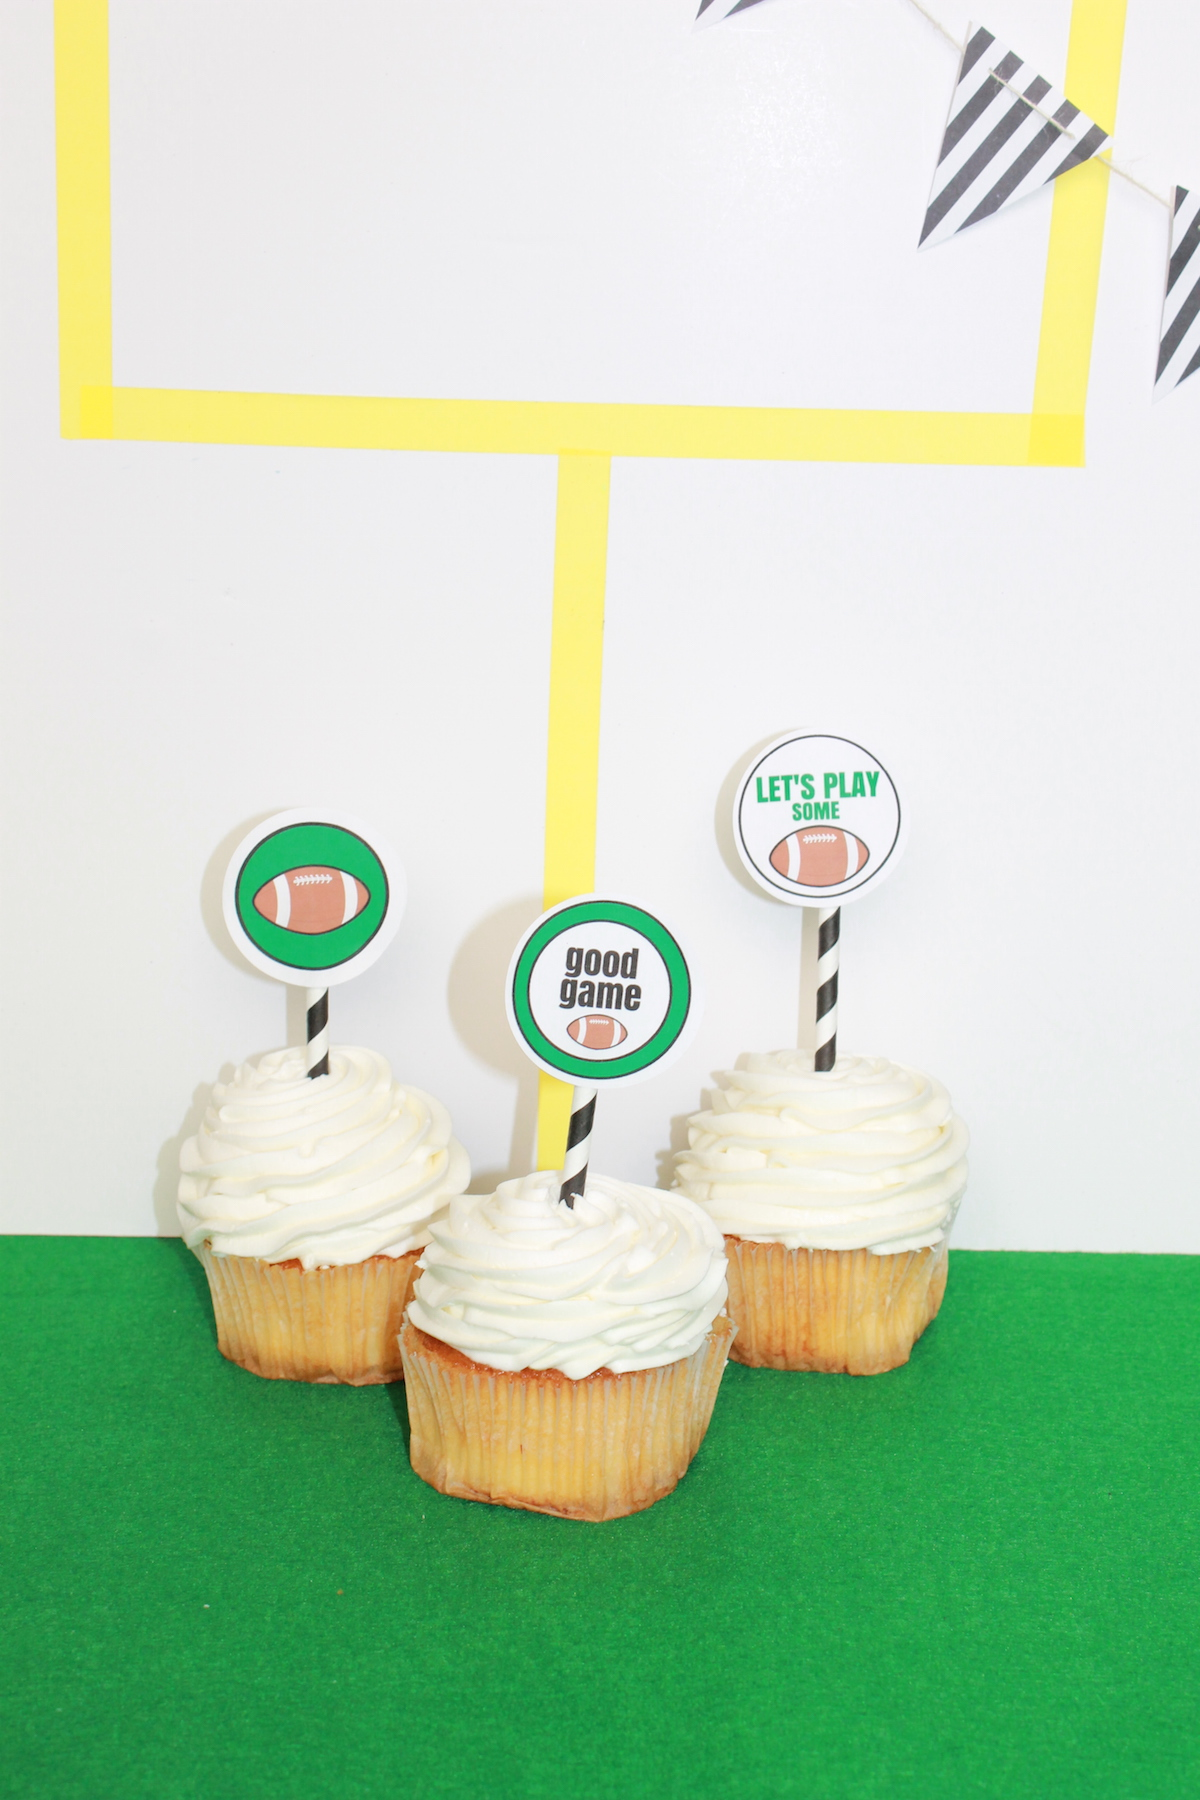 Super Bowl Party DIY; free printable; handmadebykelly.com; onlinelabels.com